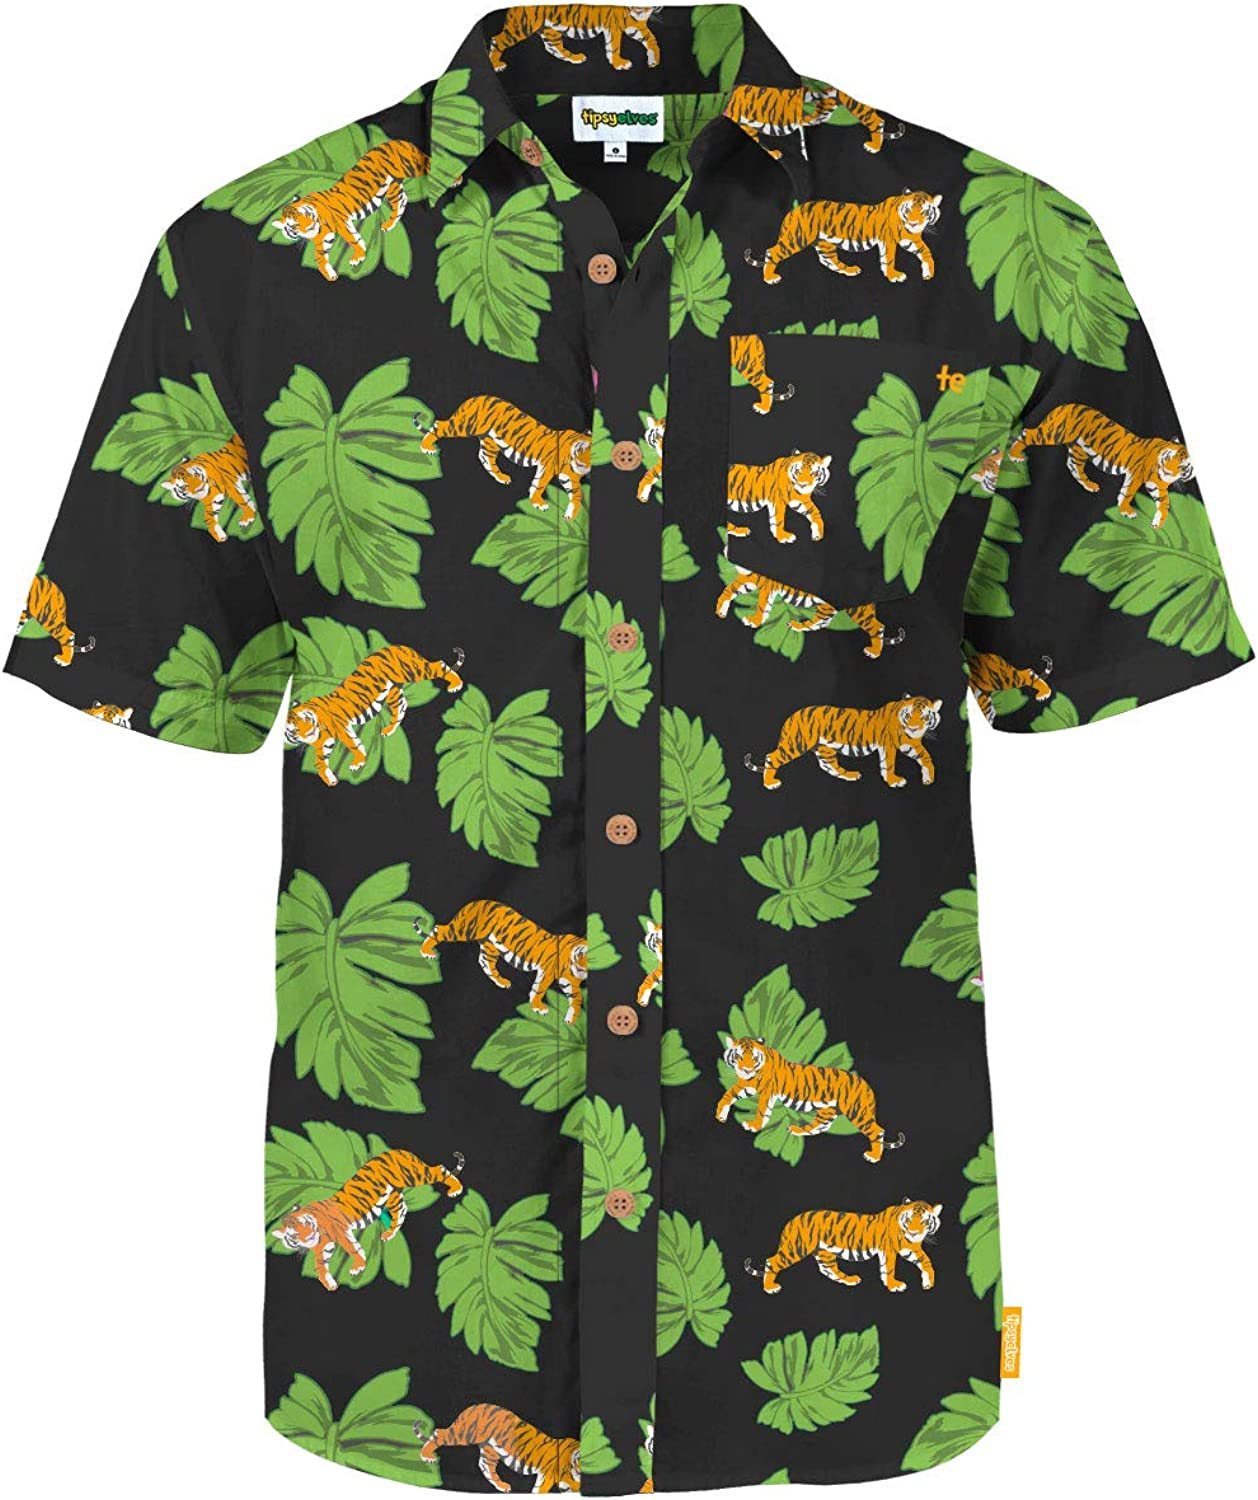 Tipsy Elves Men's Summer Button Down Shirts - Summer Button Down Shirts for Men